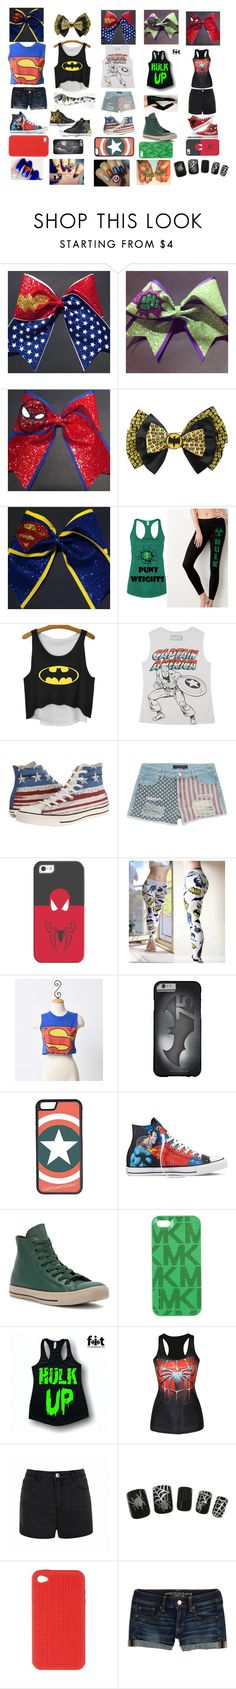 """super dates pick your date"" by lollie2142 ❤ liked on Polyvore featuring Converse, Marvel, Tinsel, Casetify, CellPowerCases, Michael Kors, Ally Fashion, Dsquared2 and American Eagle Outfitters"